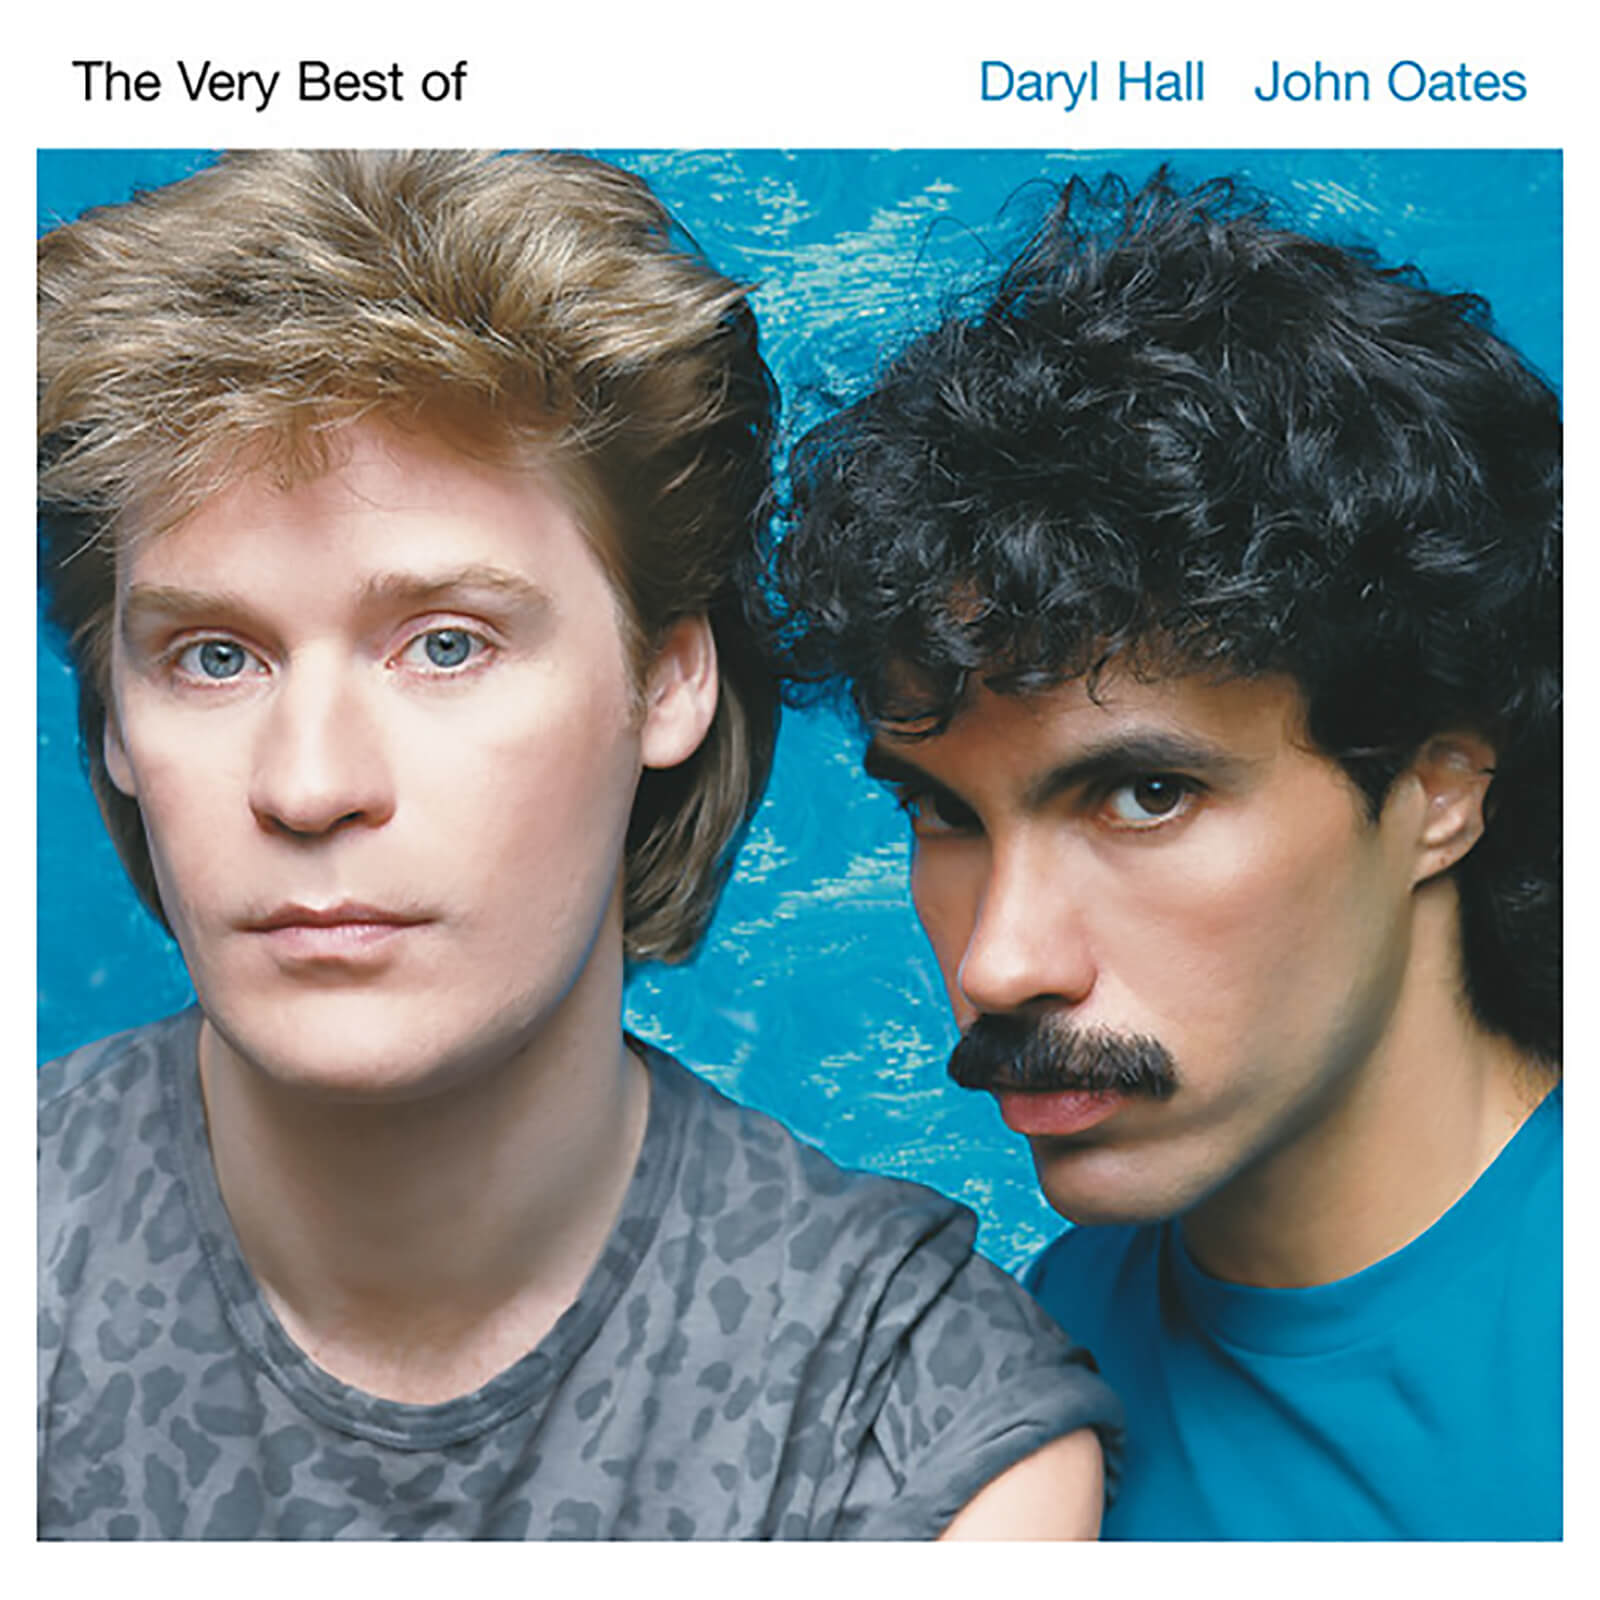 Hall & Oates - Very Best Of Darryl Hall & John Oates - Vinyl